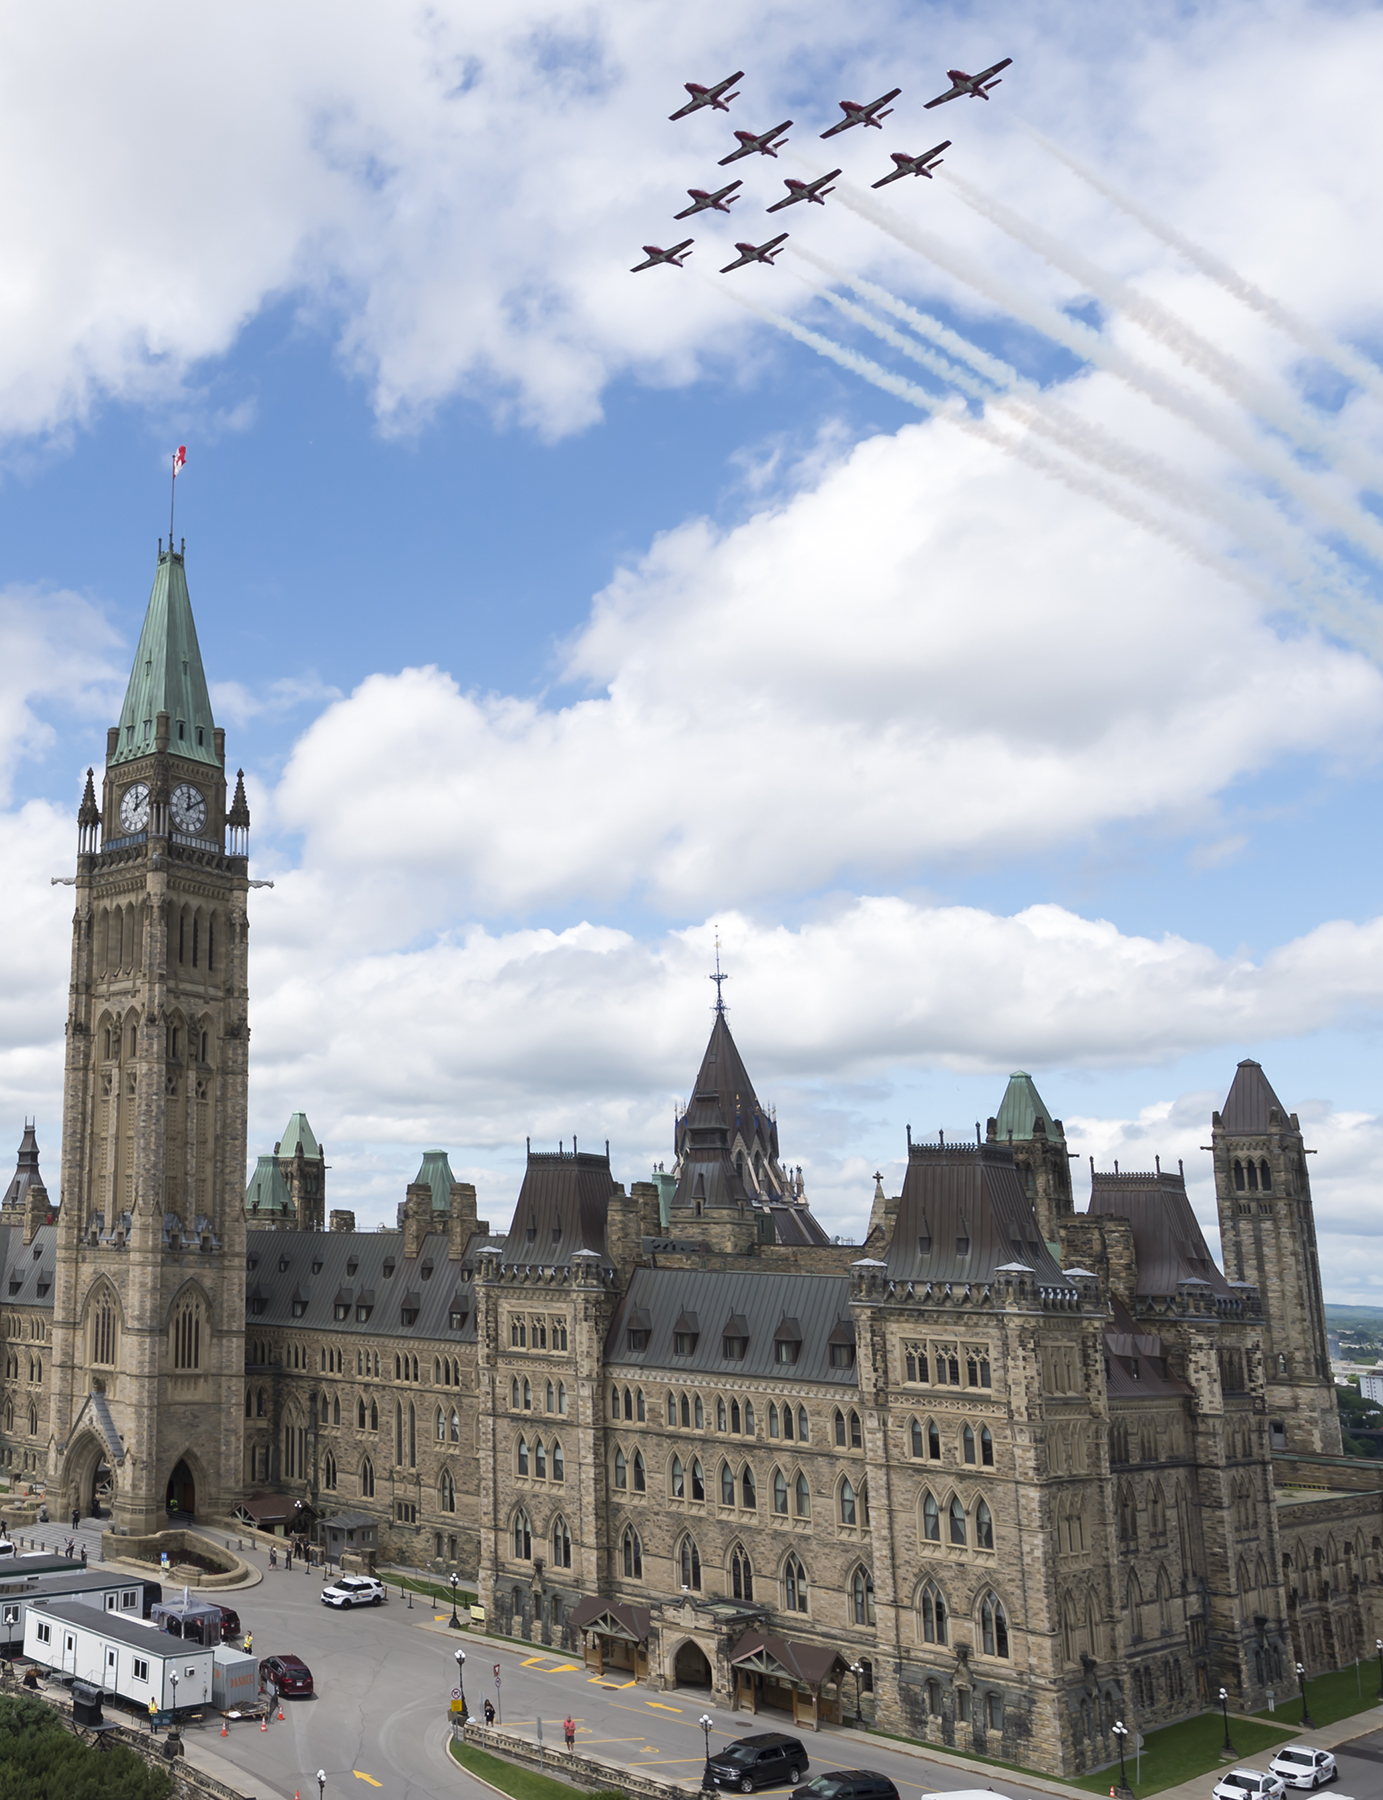 On July 2, 2017, the RCAF demonstration team of CT-114 Tutor aircraft, the Snowbirds, passes over the Peace Tower on Parliament Hill in Ottawa, Ontario, in a perfect Concord formation to mark the 150th anniversary of Canada's confederation. PHOTO: Corporal Michael J. MacIsaac, SU12-2017-0794-375